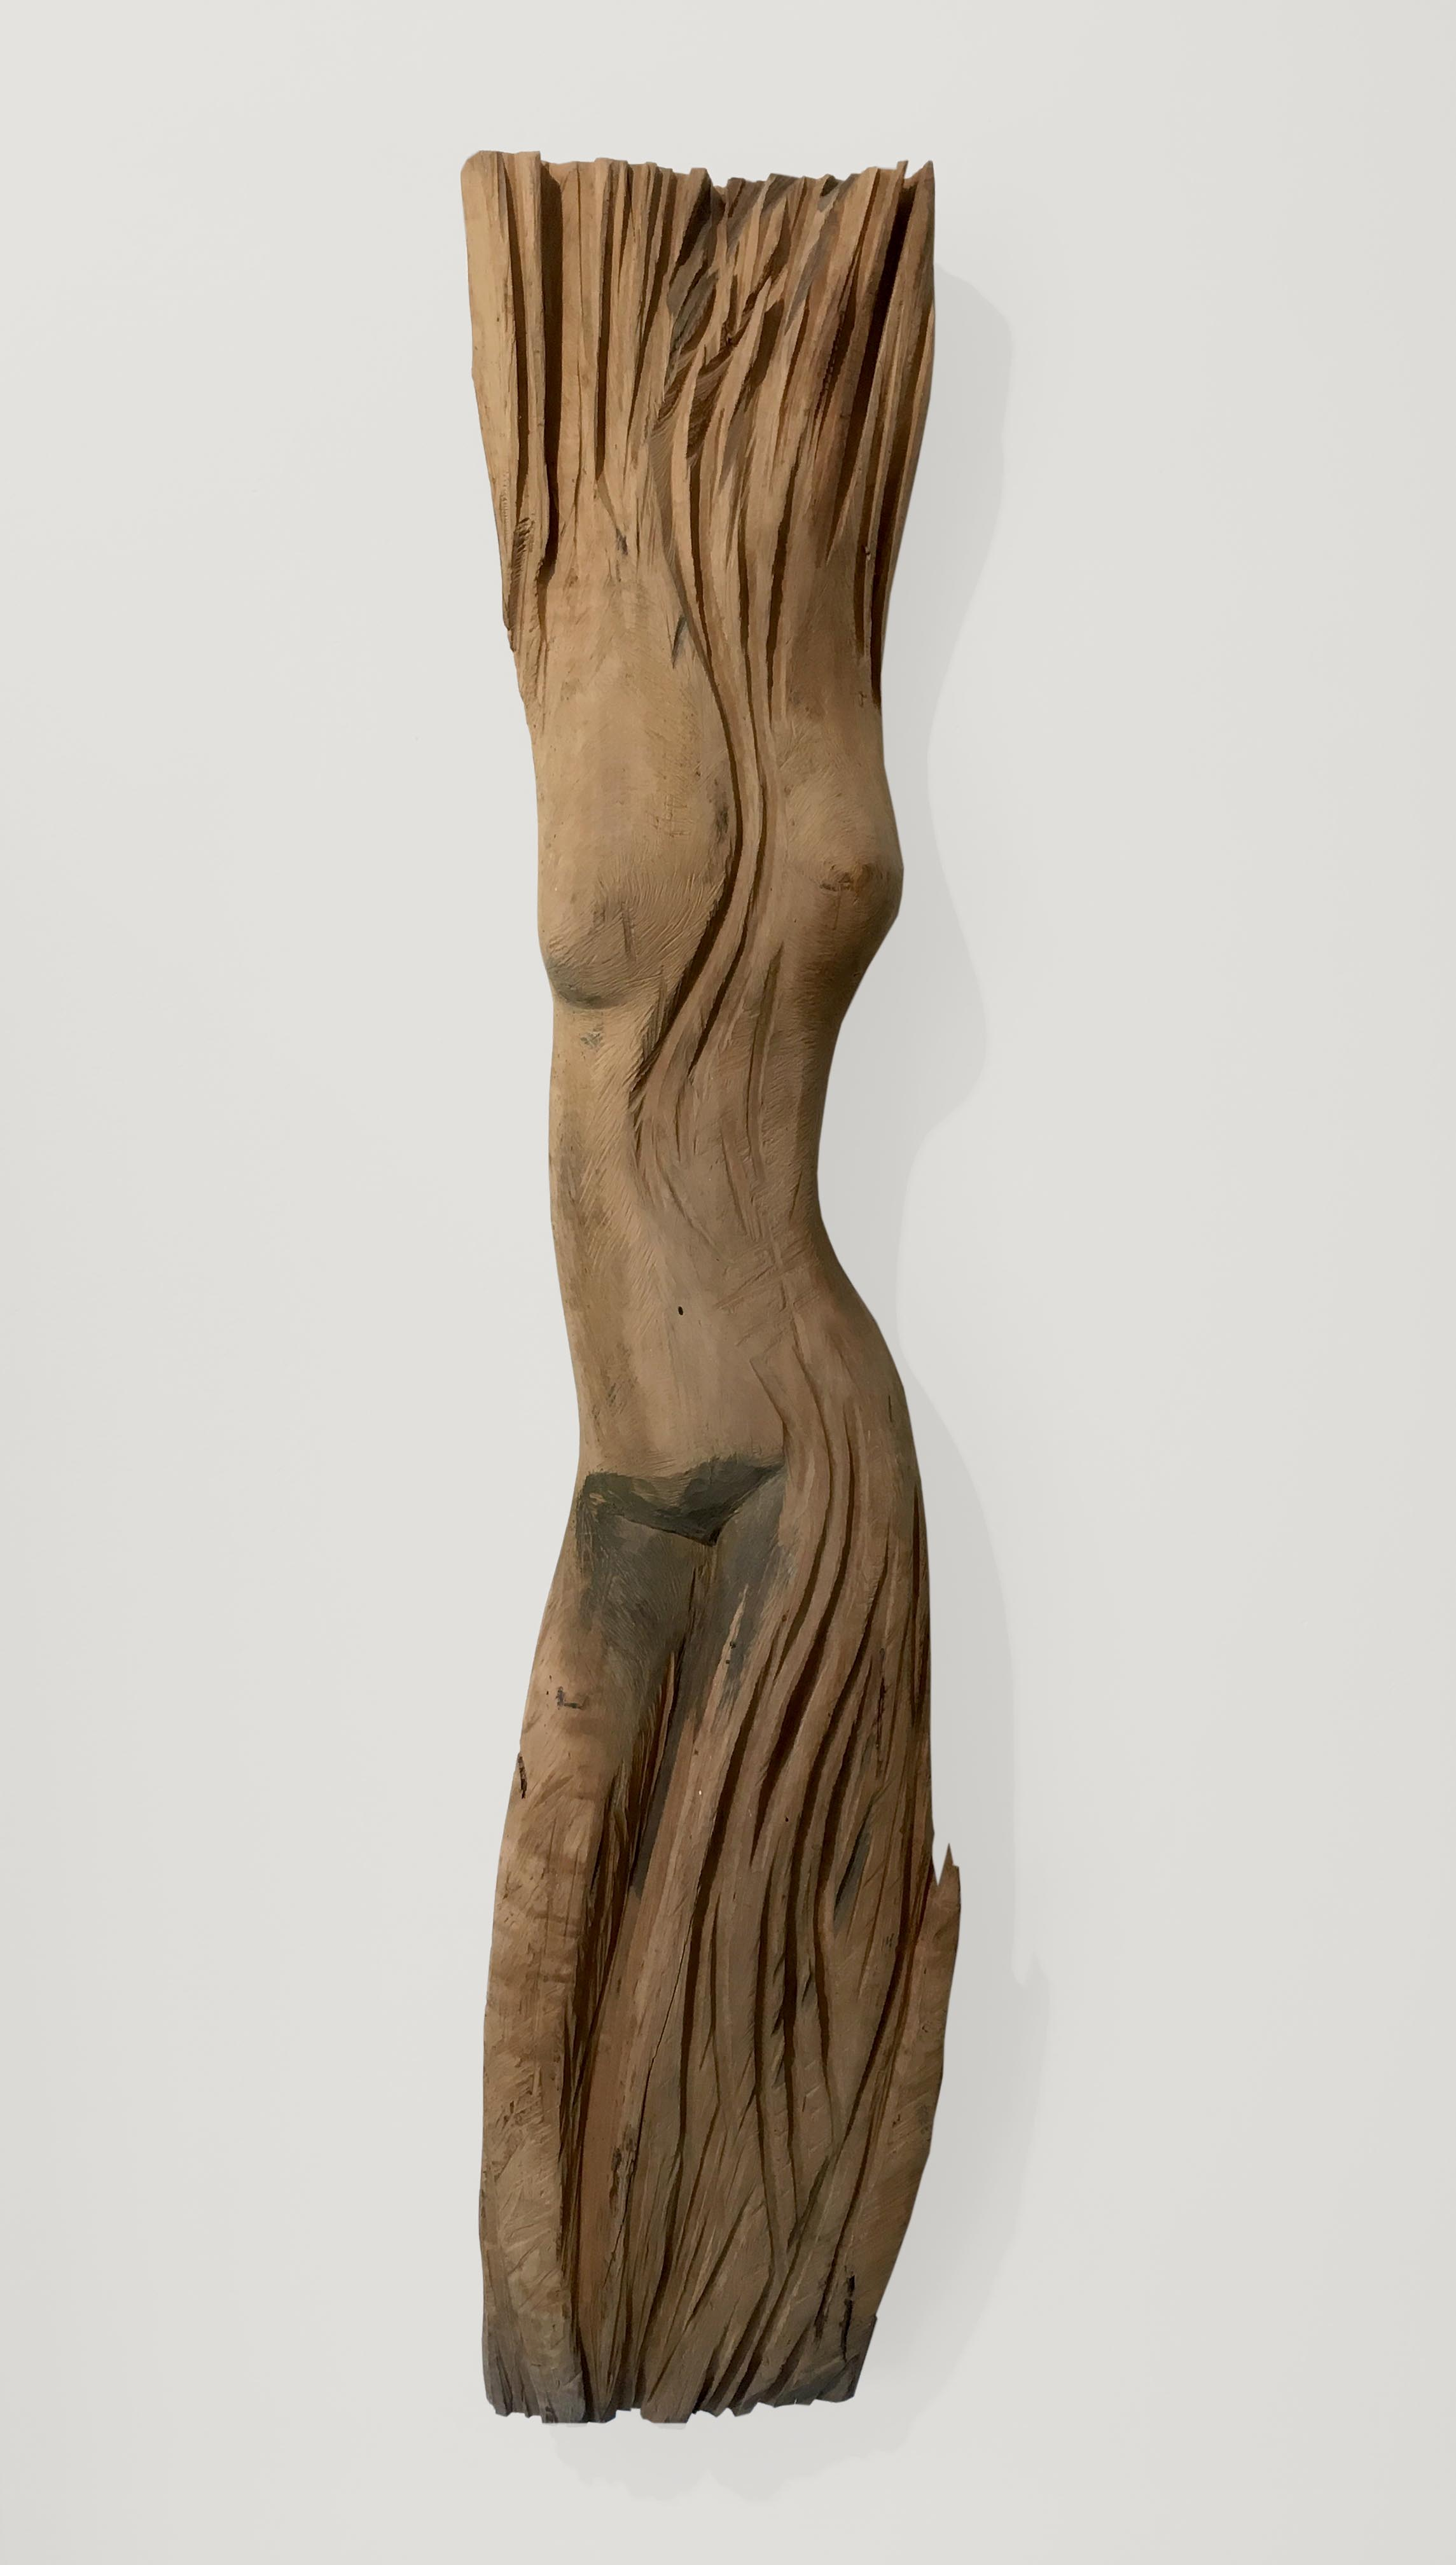 Dieter Finke | Untitled (Female Figure) | wood | 1990s | 101 x 21 x 8 cm